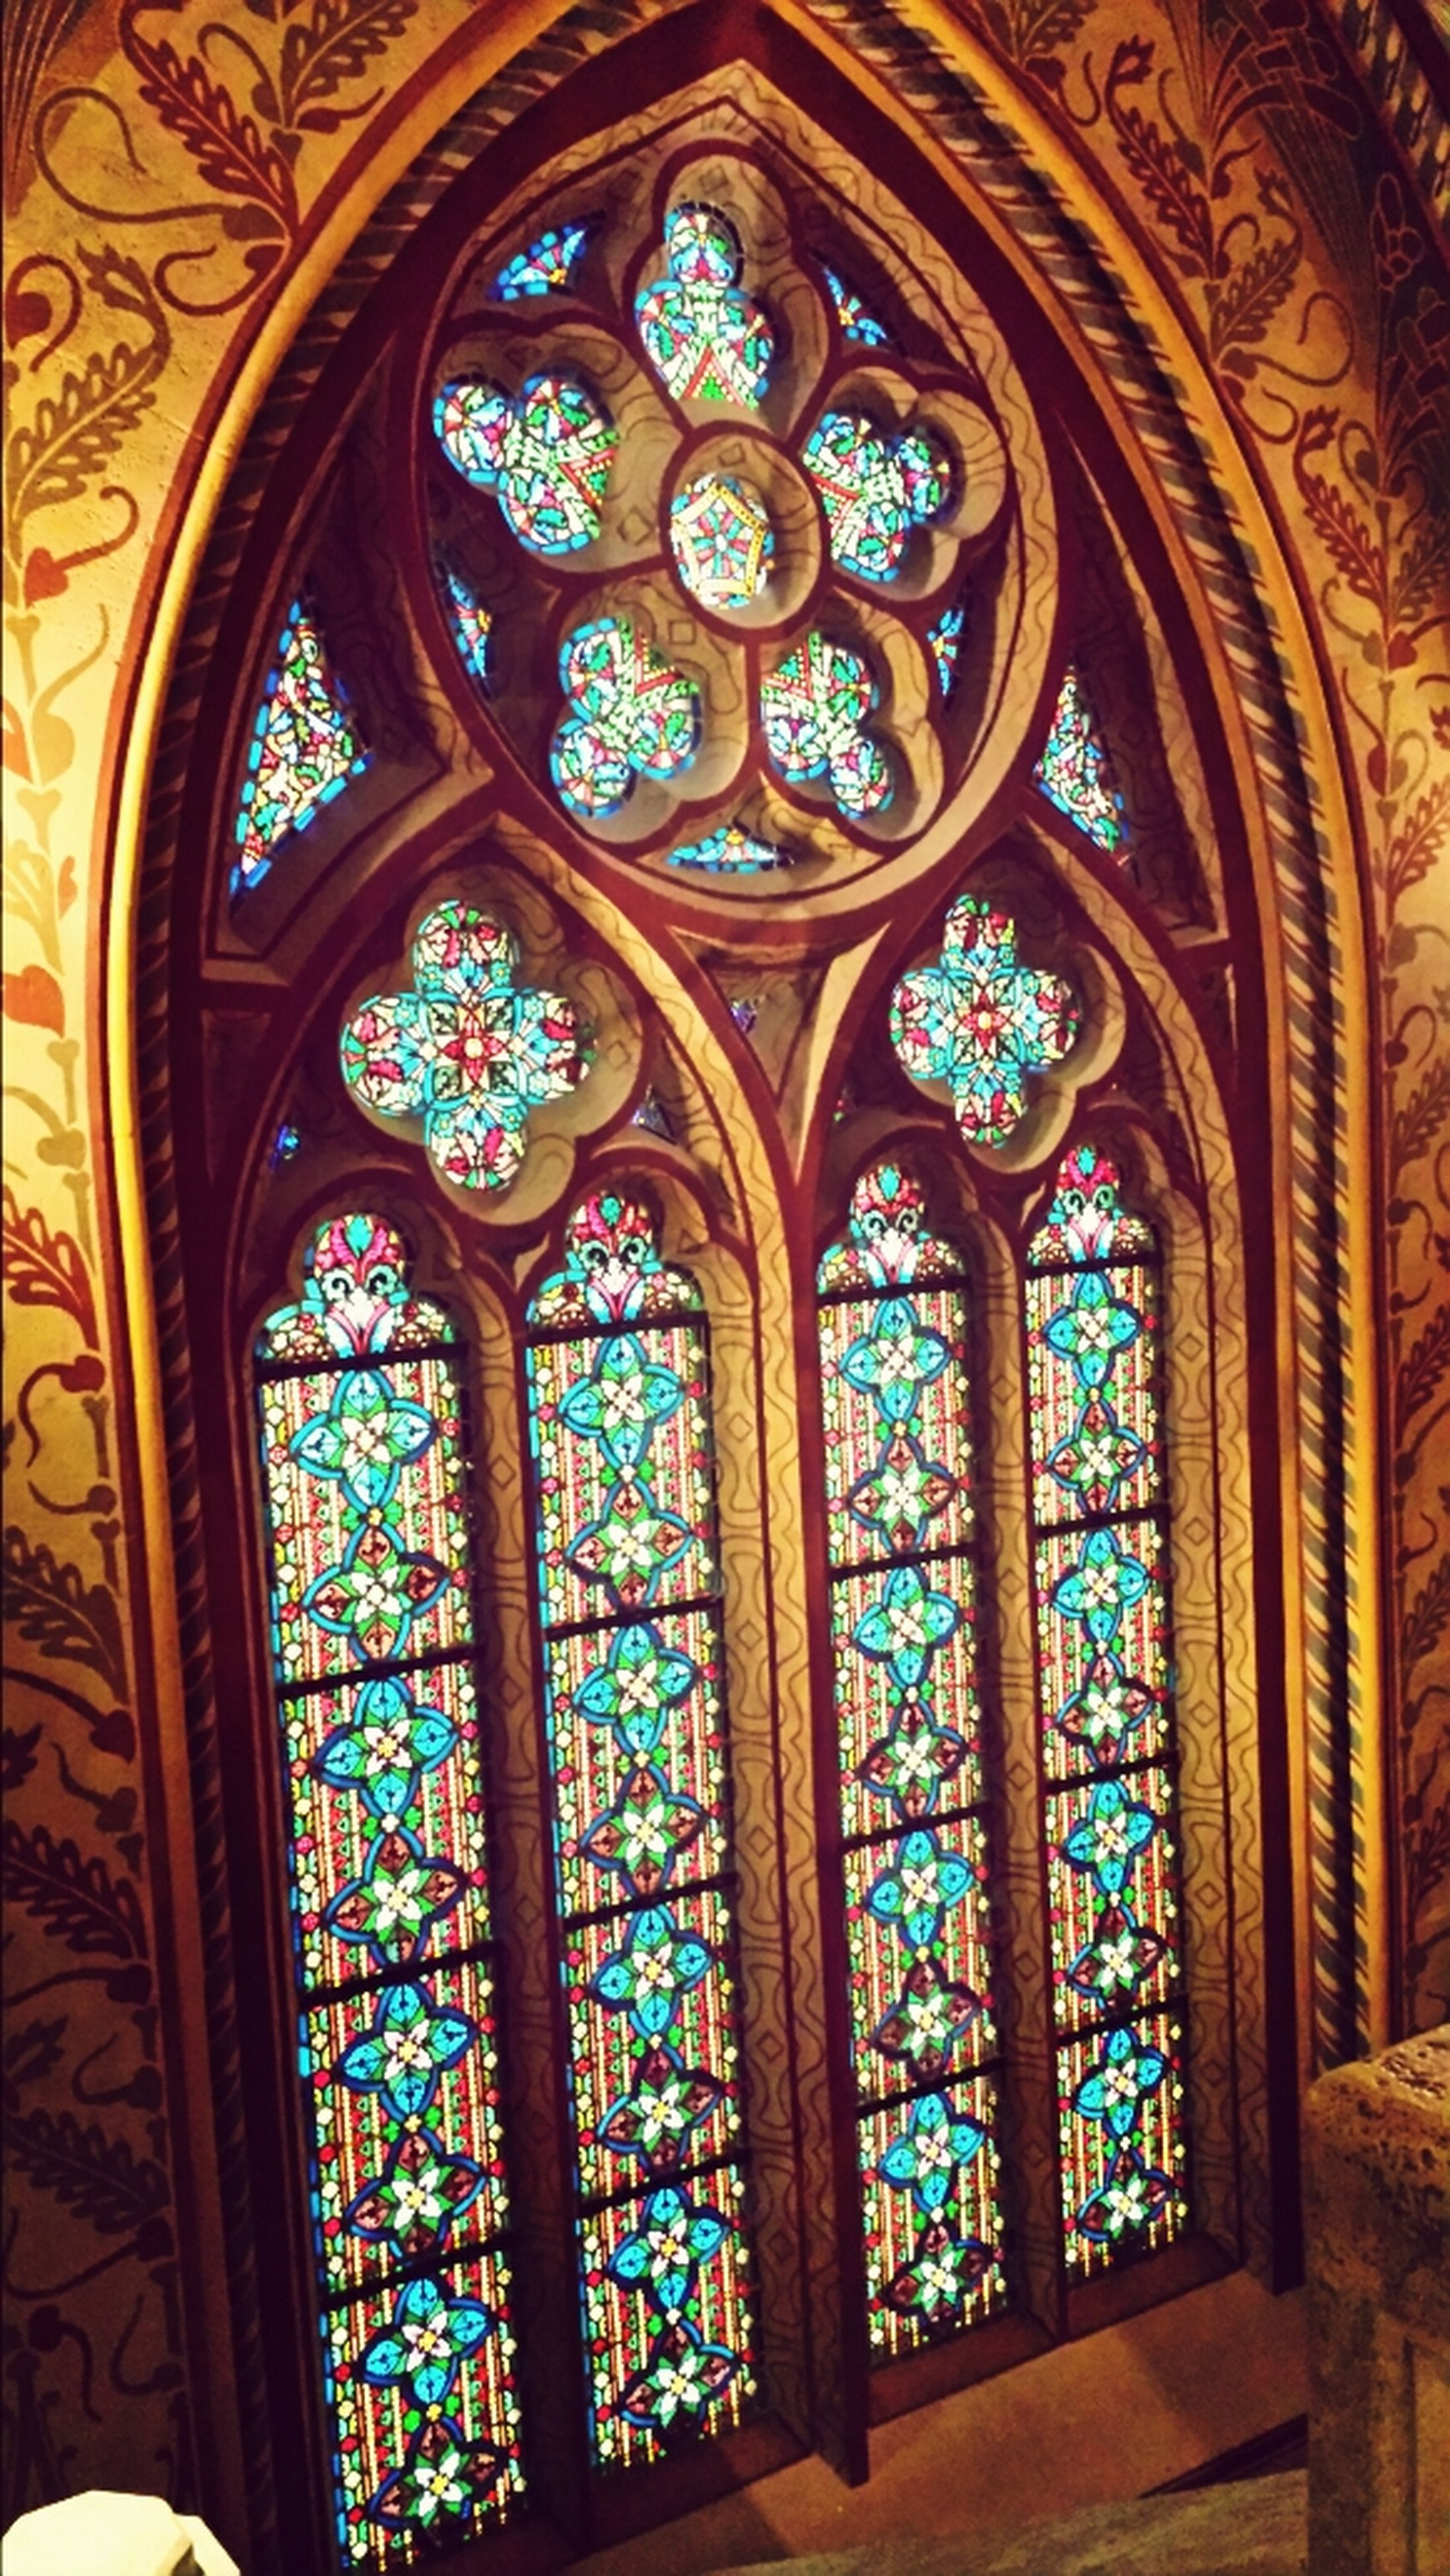 indoors, religion, place of worship, spirituality, church, stained glass, cathedral, ornate, low angle view, design, ceiling, arch, architecture, built structure, art, art and craft, pattern, window